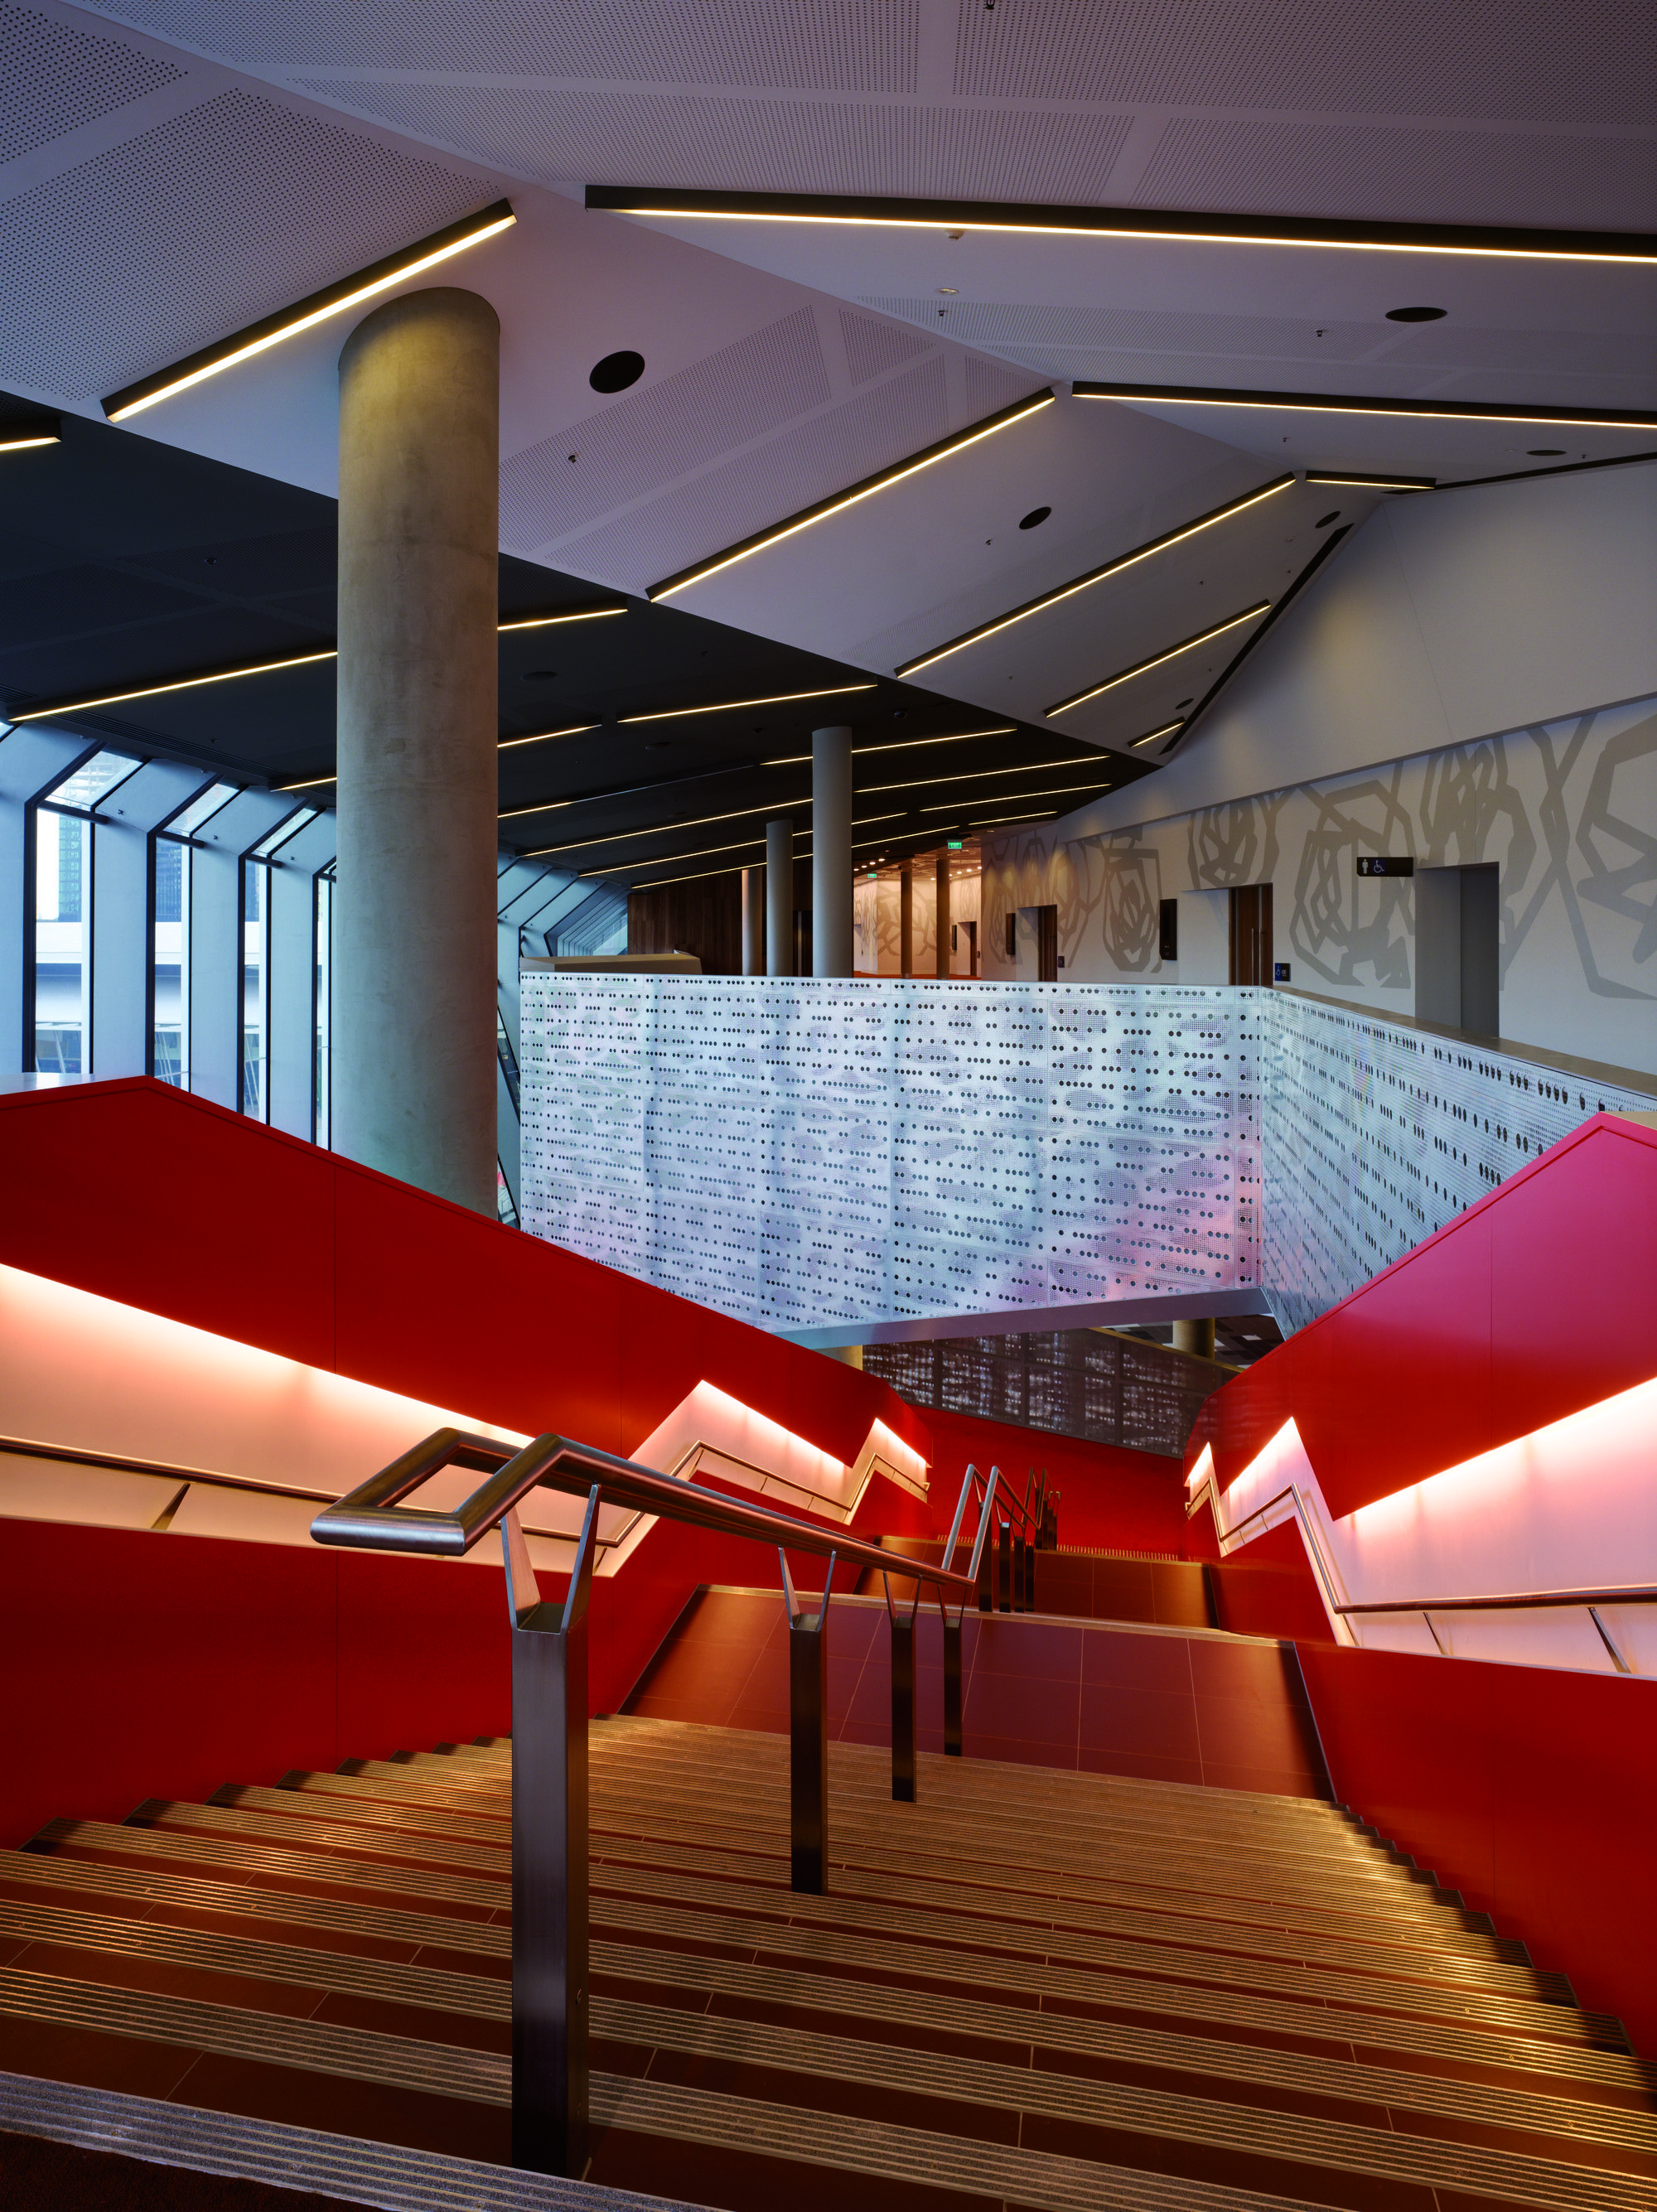 Winners of the 2010 Australian National Architecture Awards